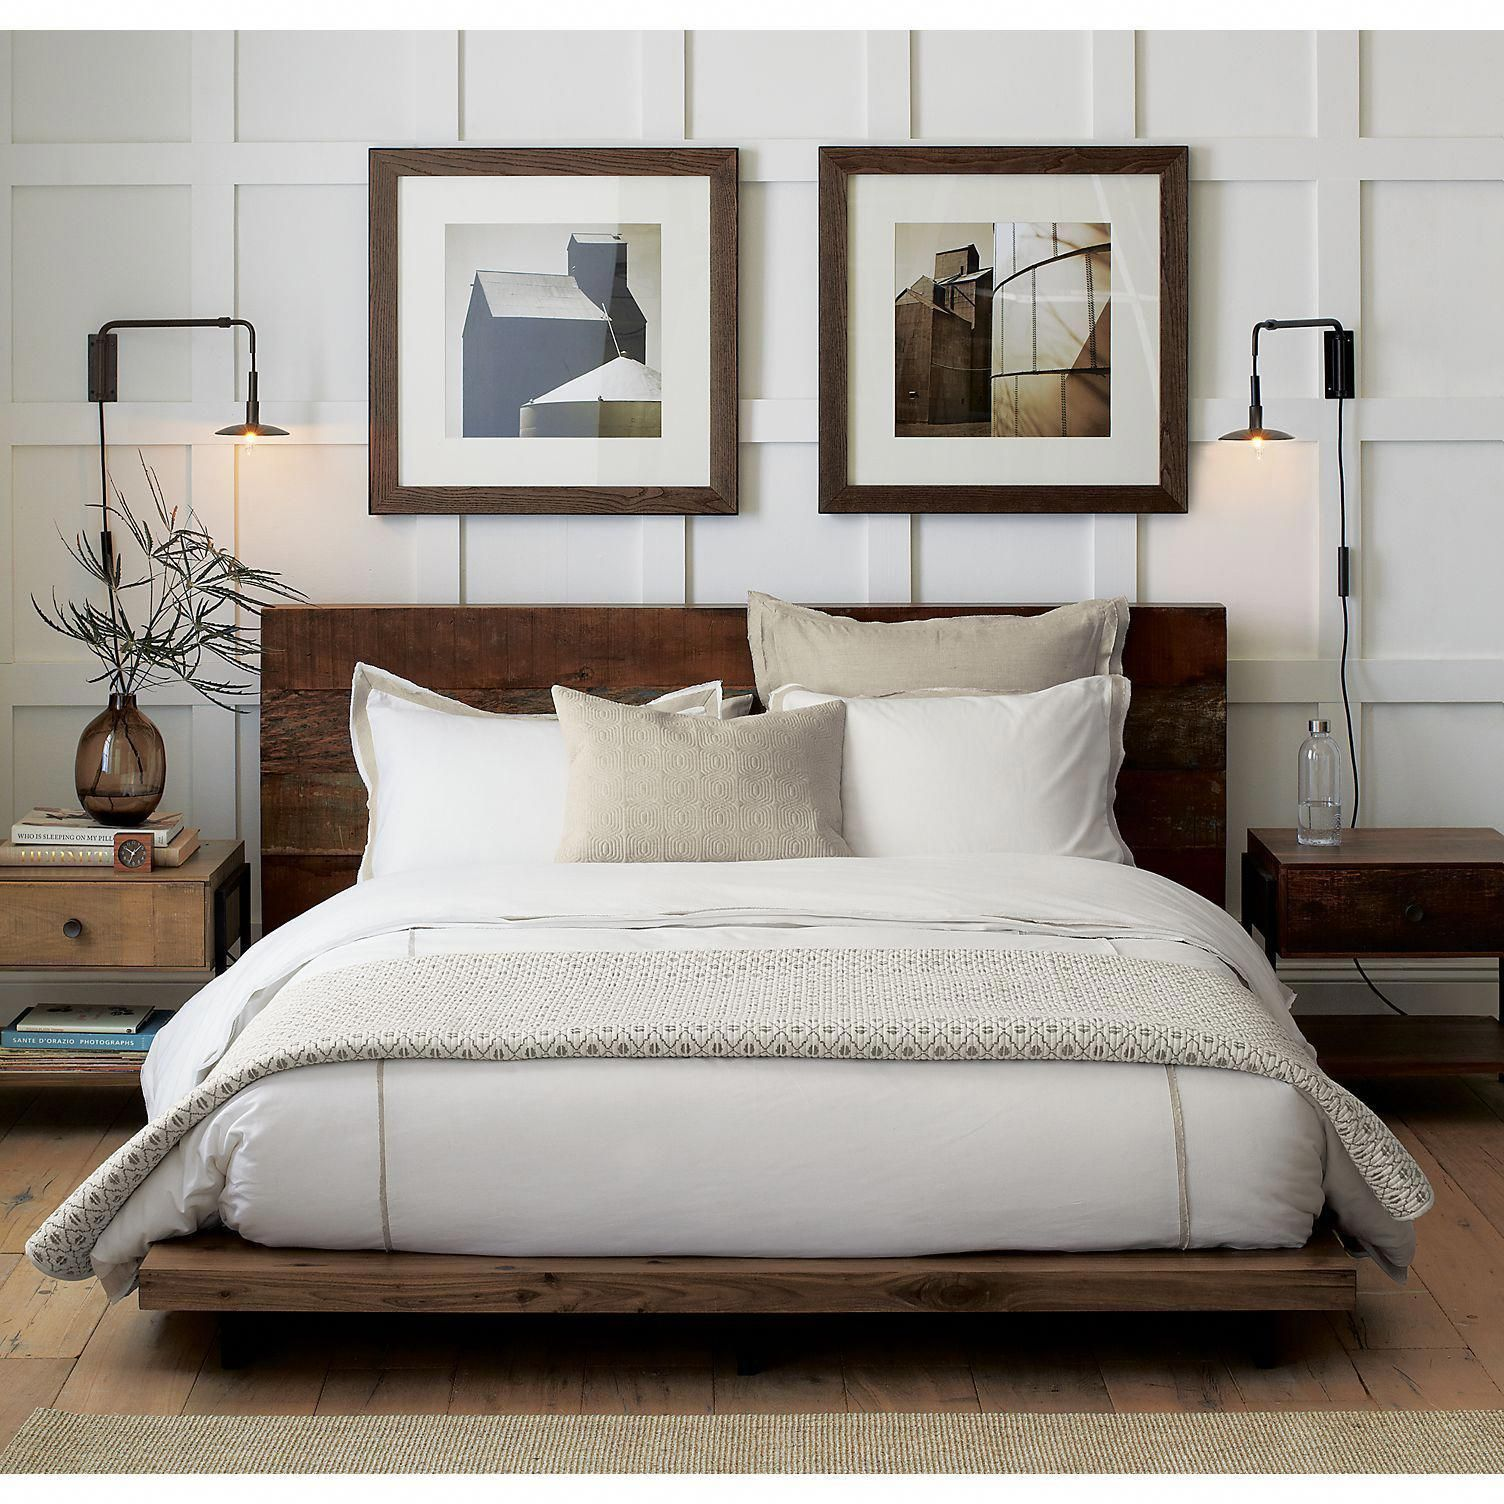 Atwood Rustic Platform Bed Crate and Barrel in 2020